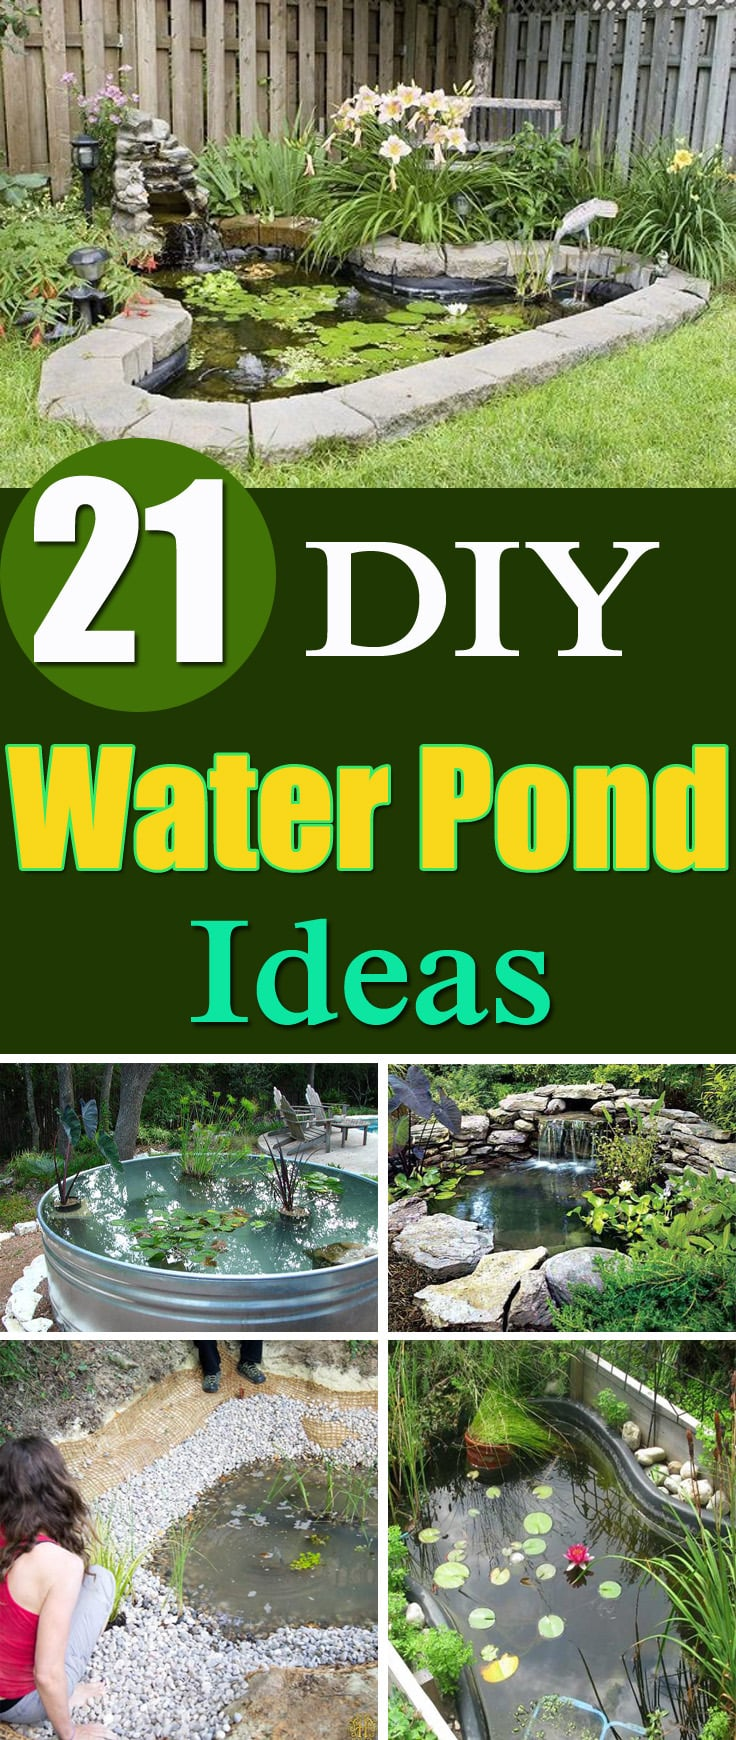 21 DIY Water Pond Ideas | DIY Water Gardens For Backyards ... on Small Backyard Pond  id=47777